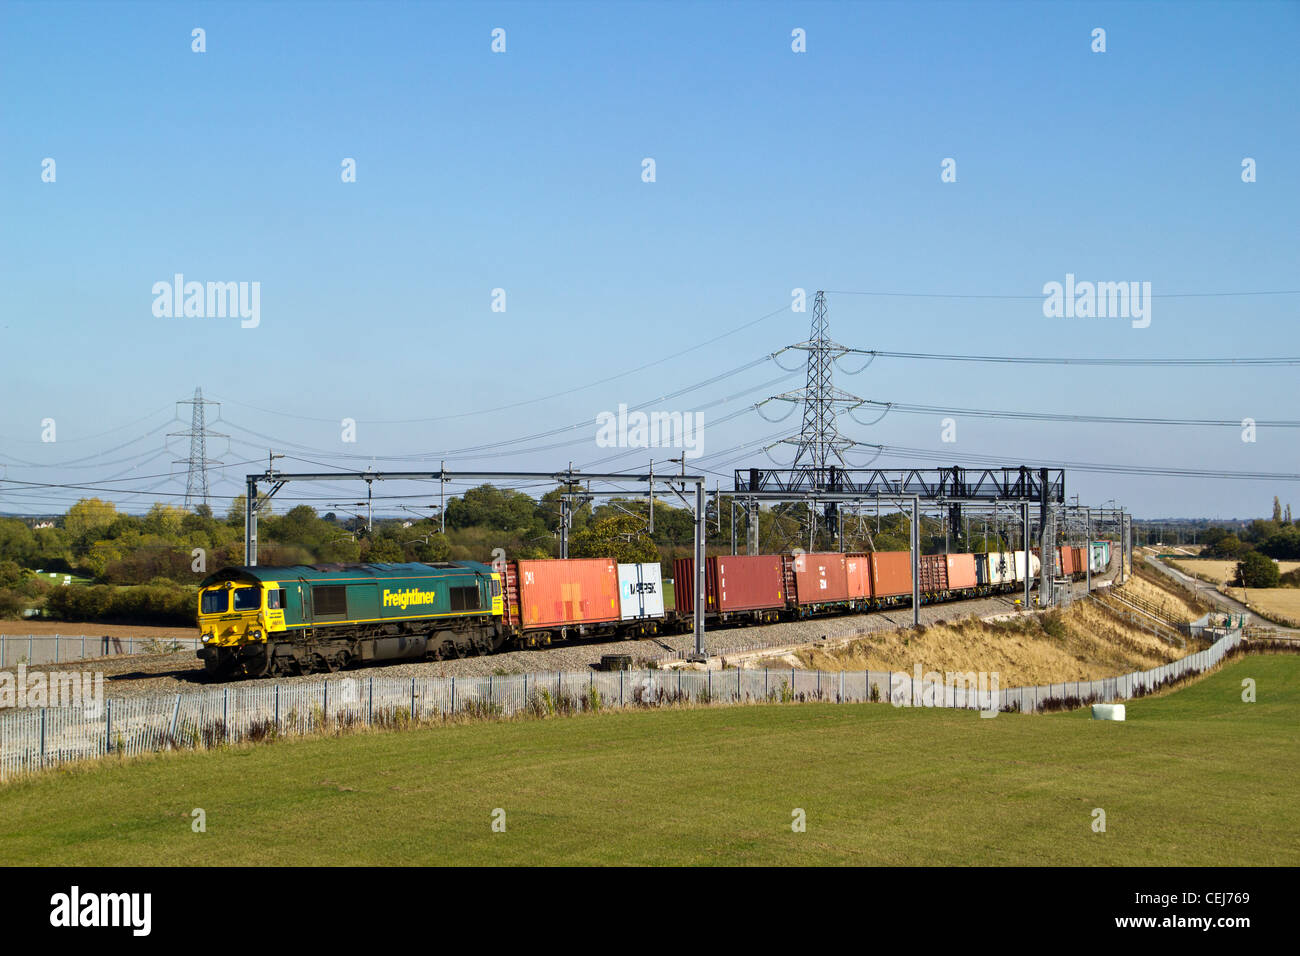 Freightliner class 66 and intermodal freight train, Lichfield, Staffordshire, England. - Stock Image